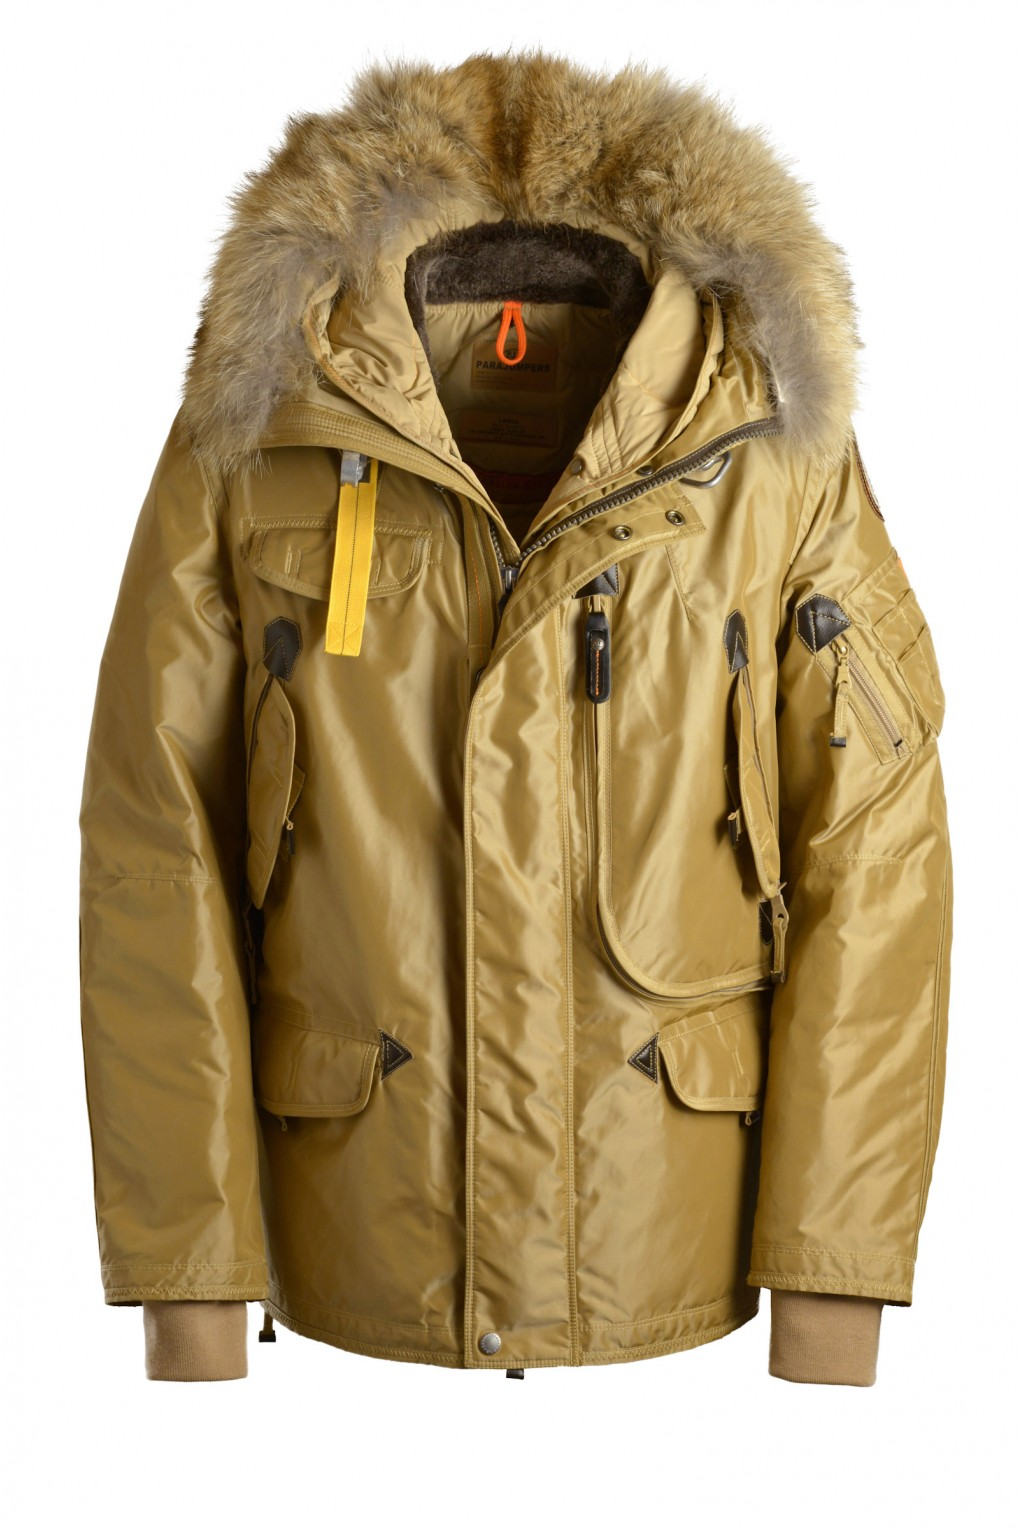 parajumpers RIGHT HAND man outerwear Honey